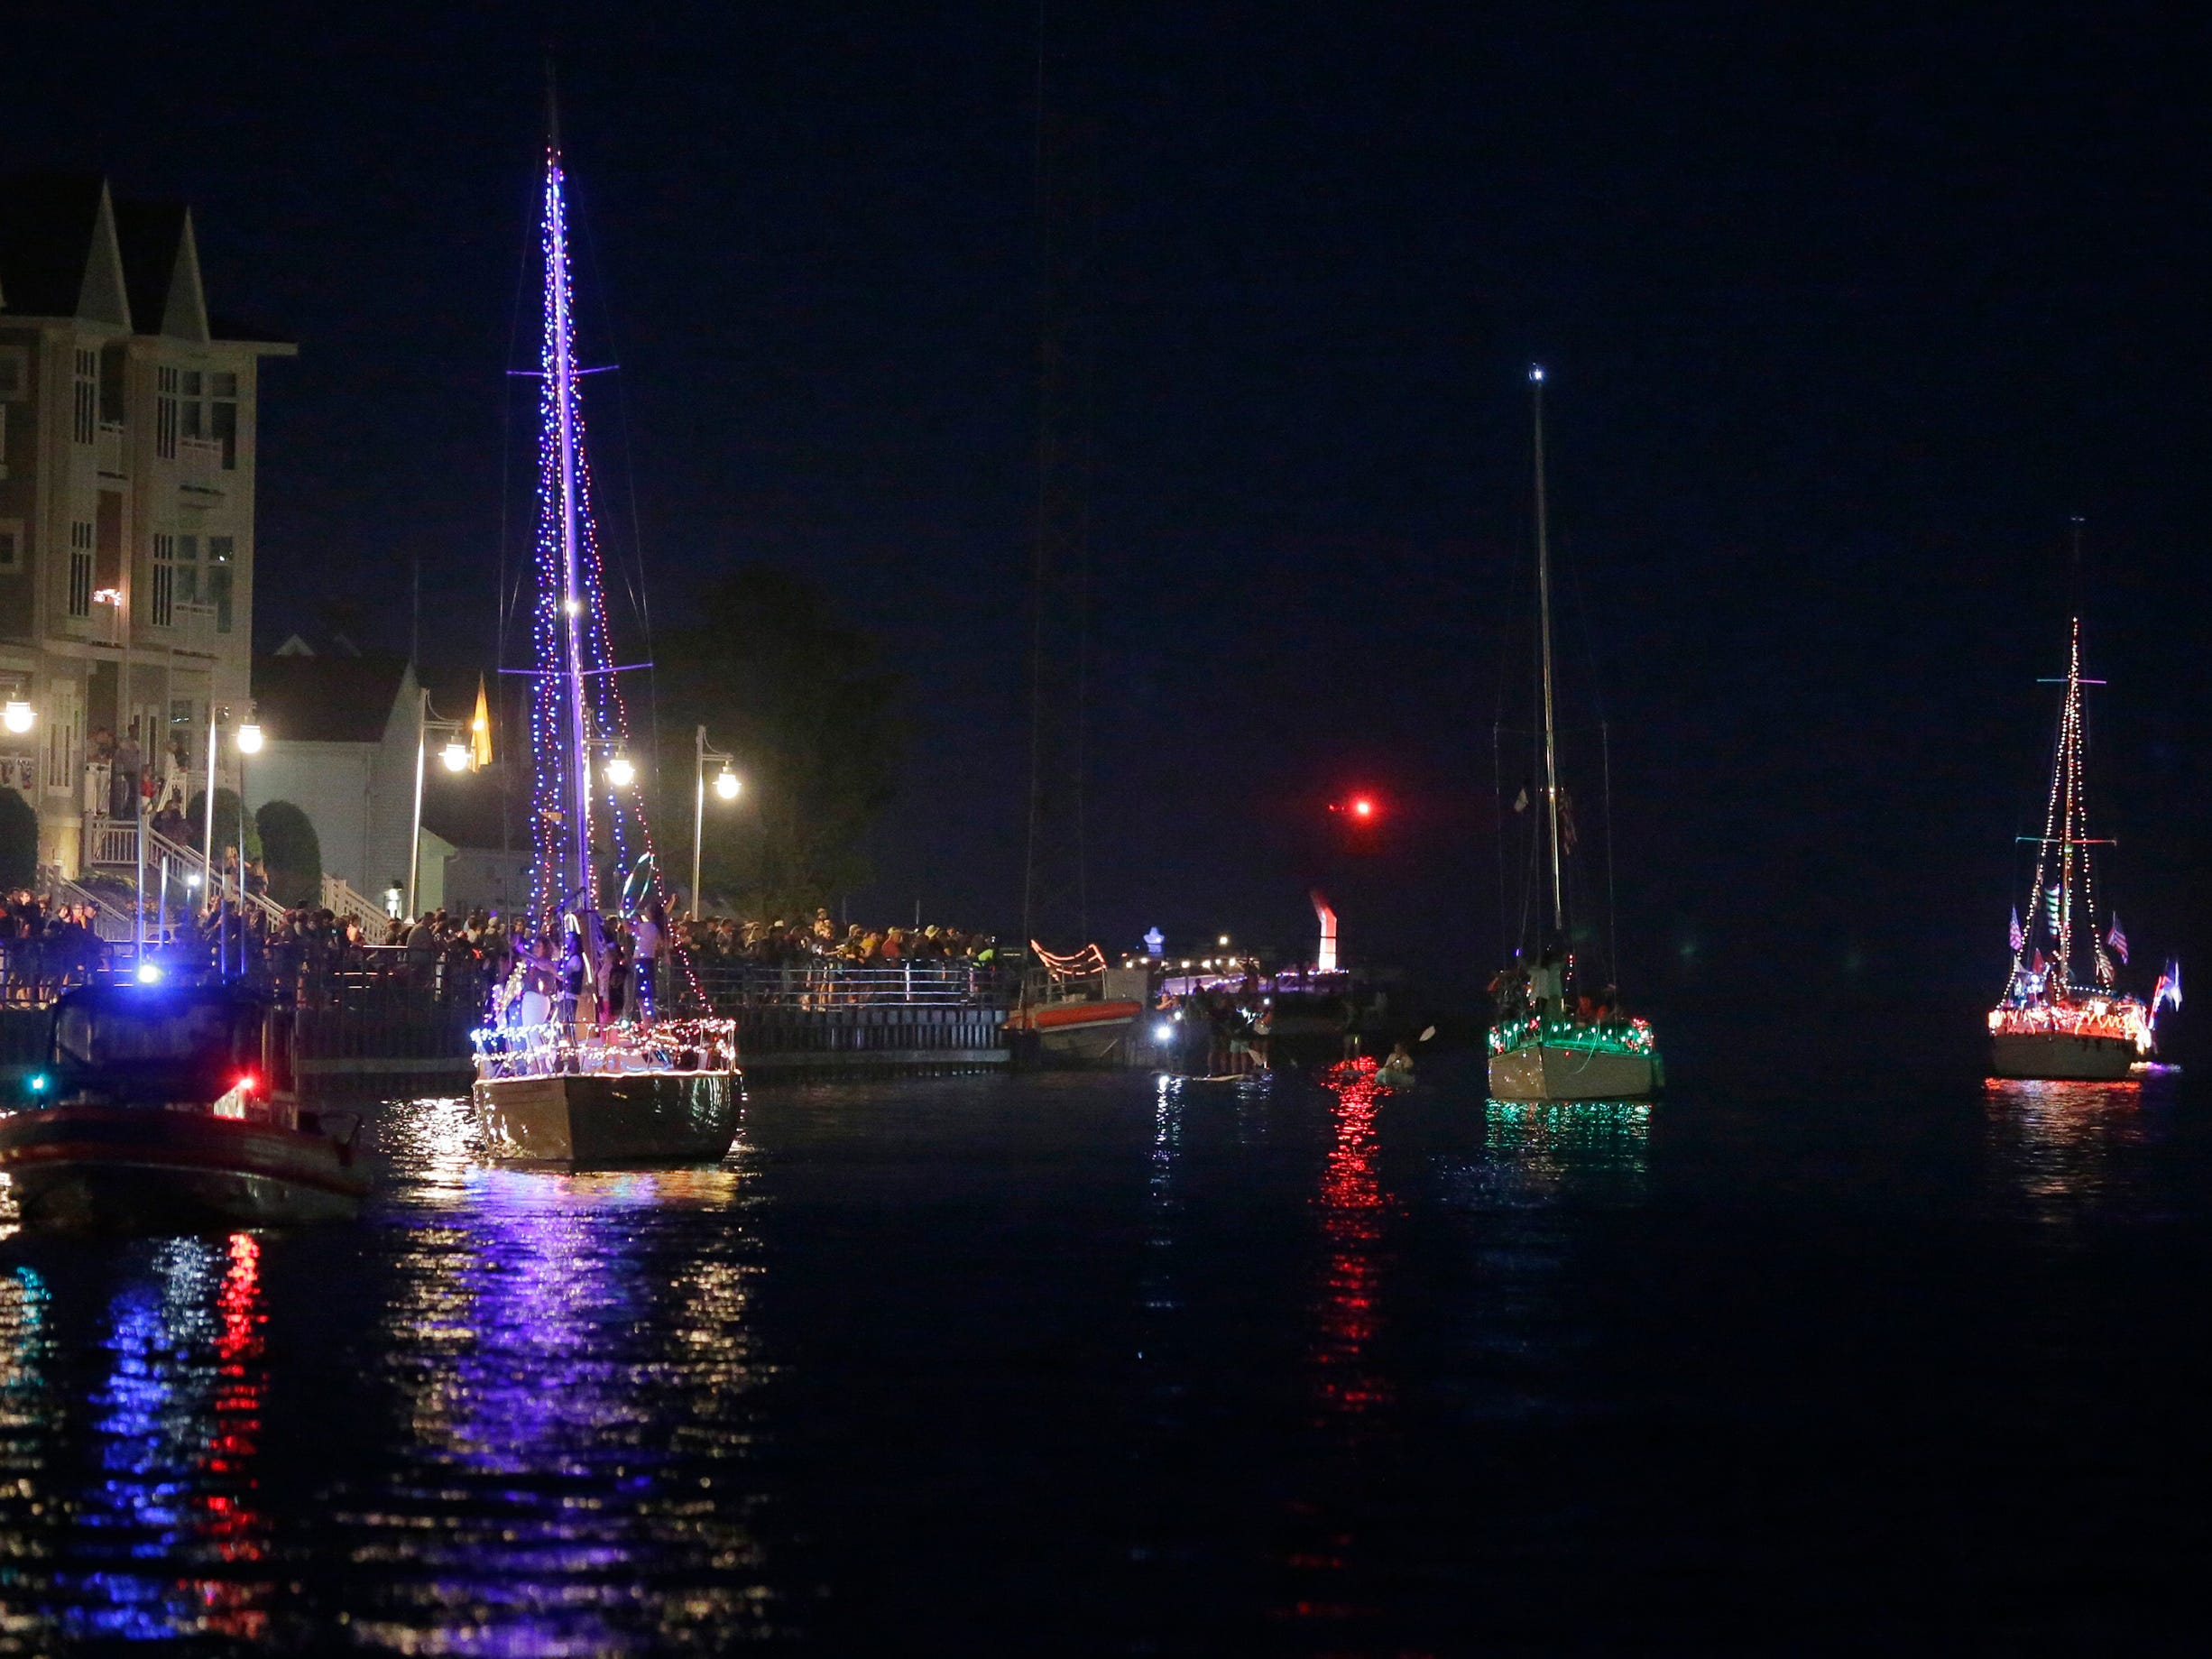 A scene from the Venetian Boat Parade at the Sheboygan Riverfront, Tuesday, July 3, 2018, in Sheboygan, Wis.